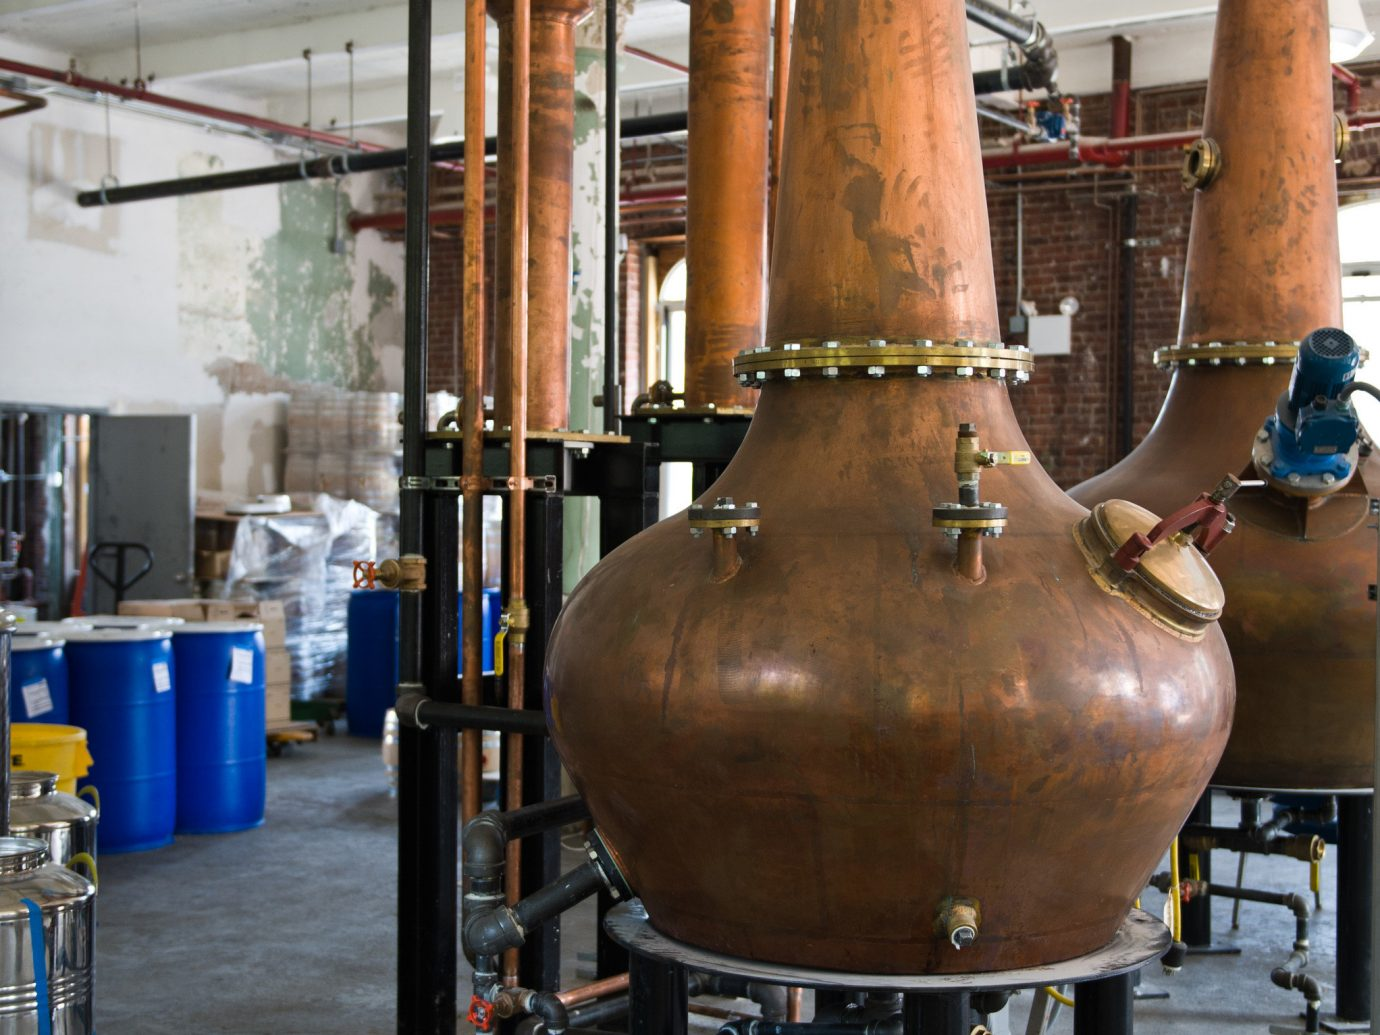 alcohol beverage Brooklyn distilled beverage distillery Drink Food + Drink industrial interior liqueur urban whiskey whisky factory industry